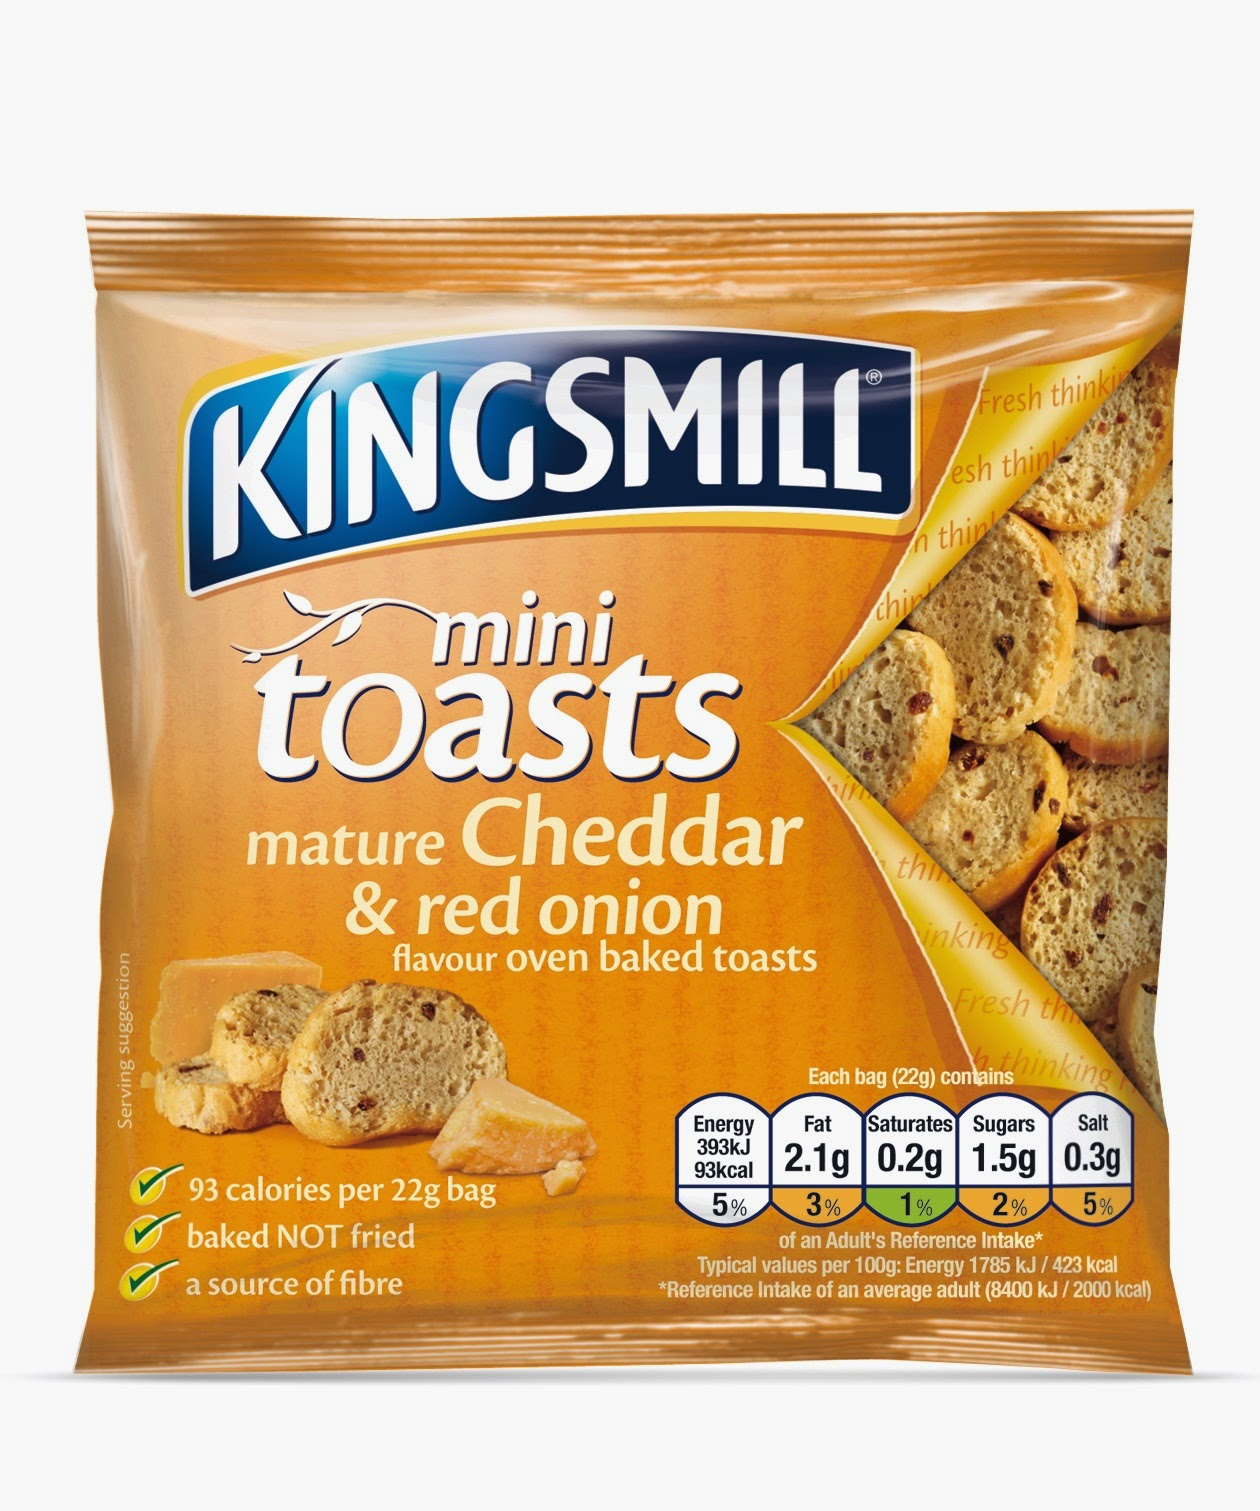 Kingsmill mini toasts mature cheddar and red onion